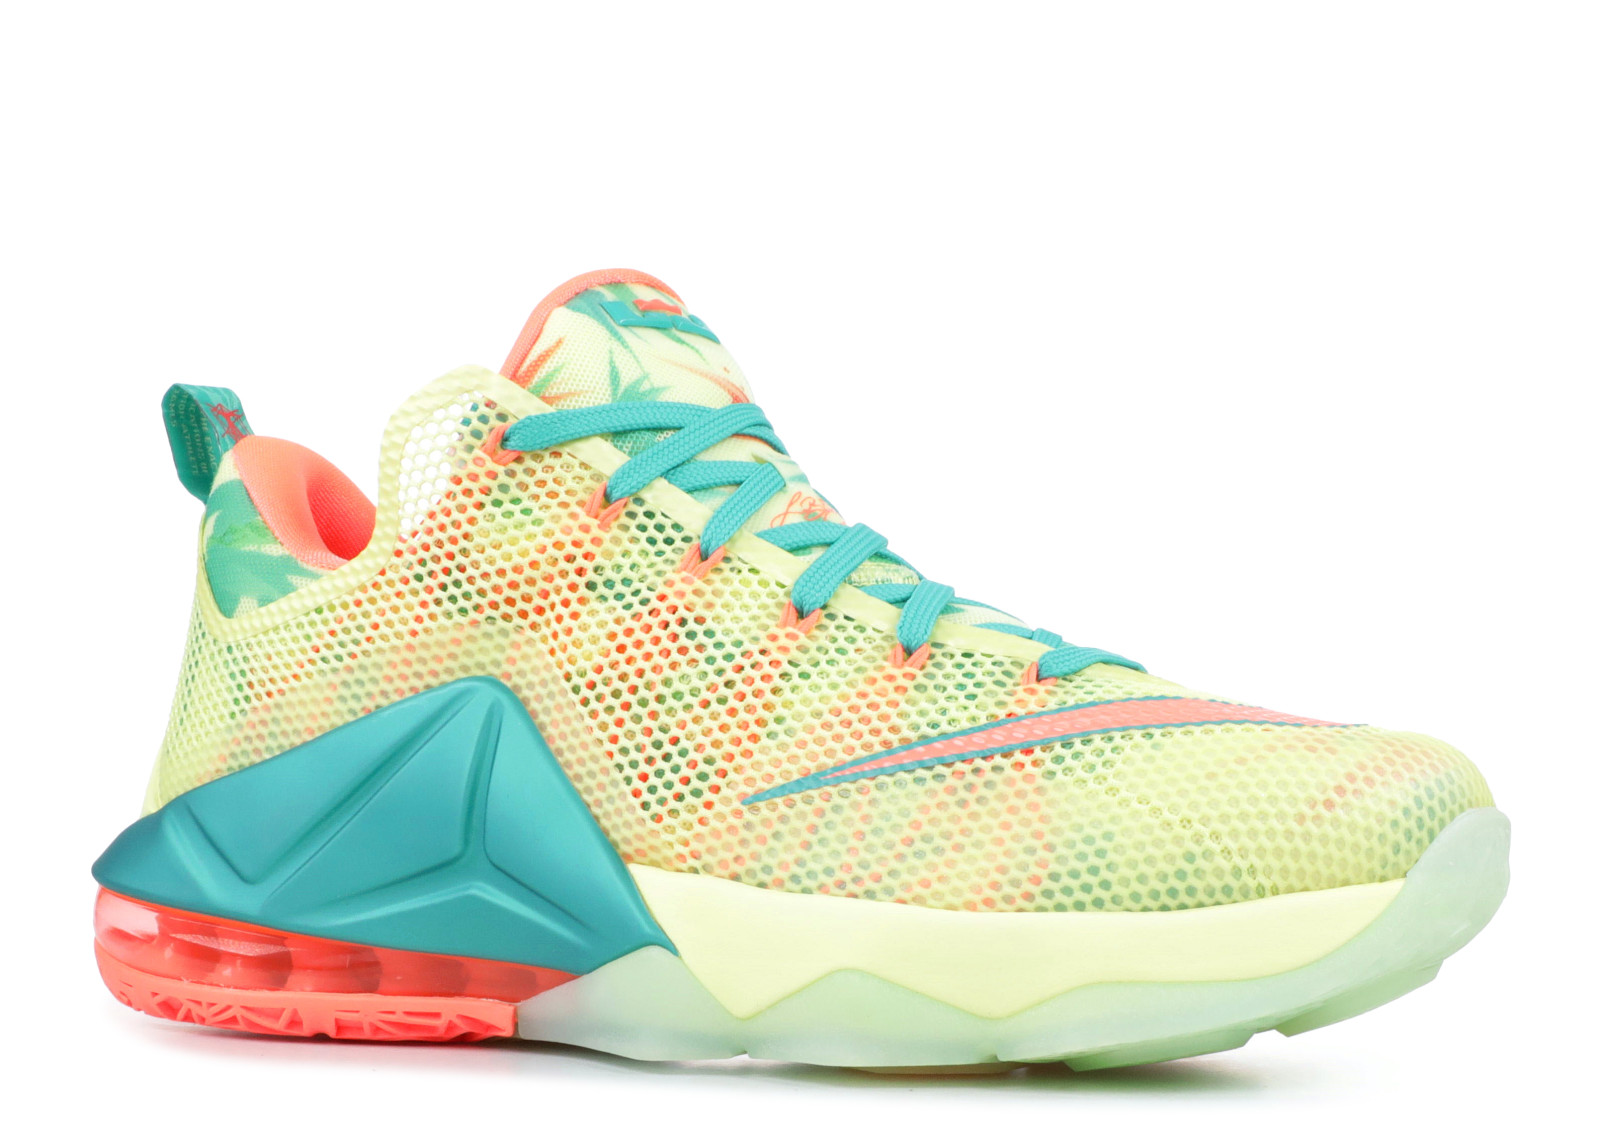 low priced f100f 91033 Nike Lebron 12 Low Prm  Lebronold Palmer  - 776652-383 - Size 10